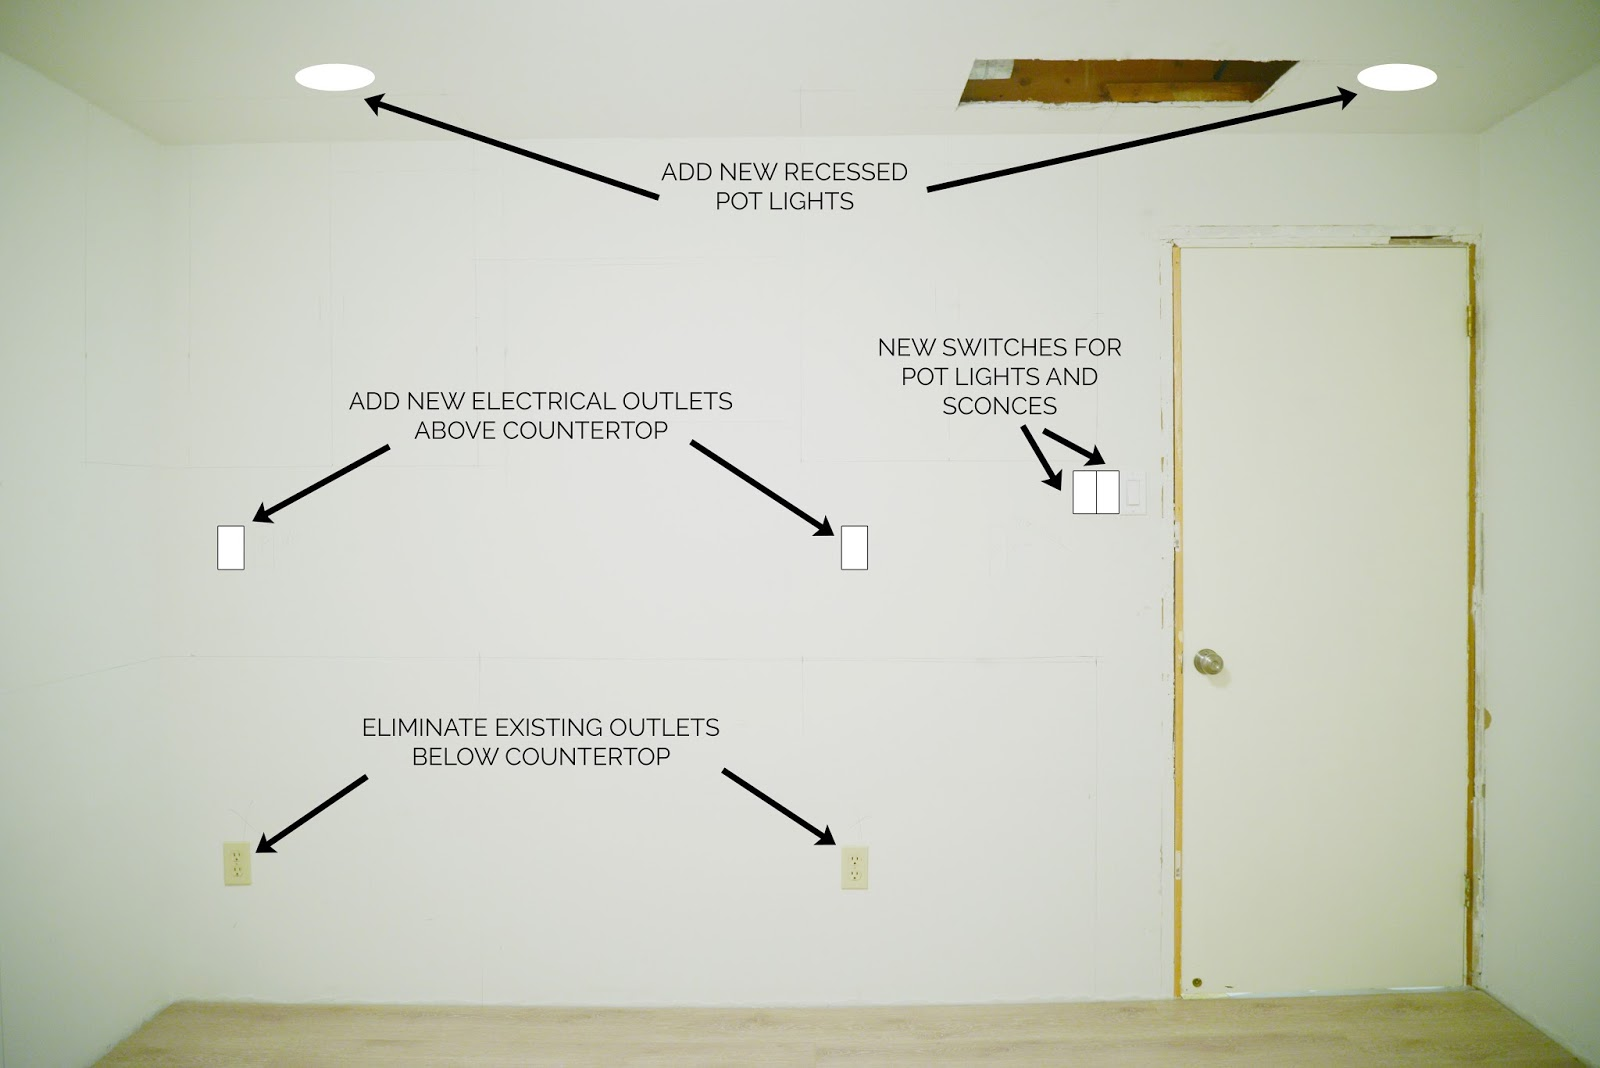 medium resolution of craft room electrical plan considerations ramblingrenovators ca projectcraftsdept